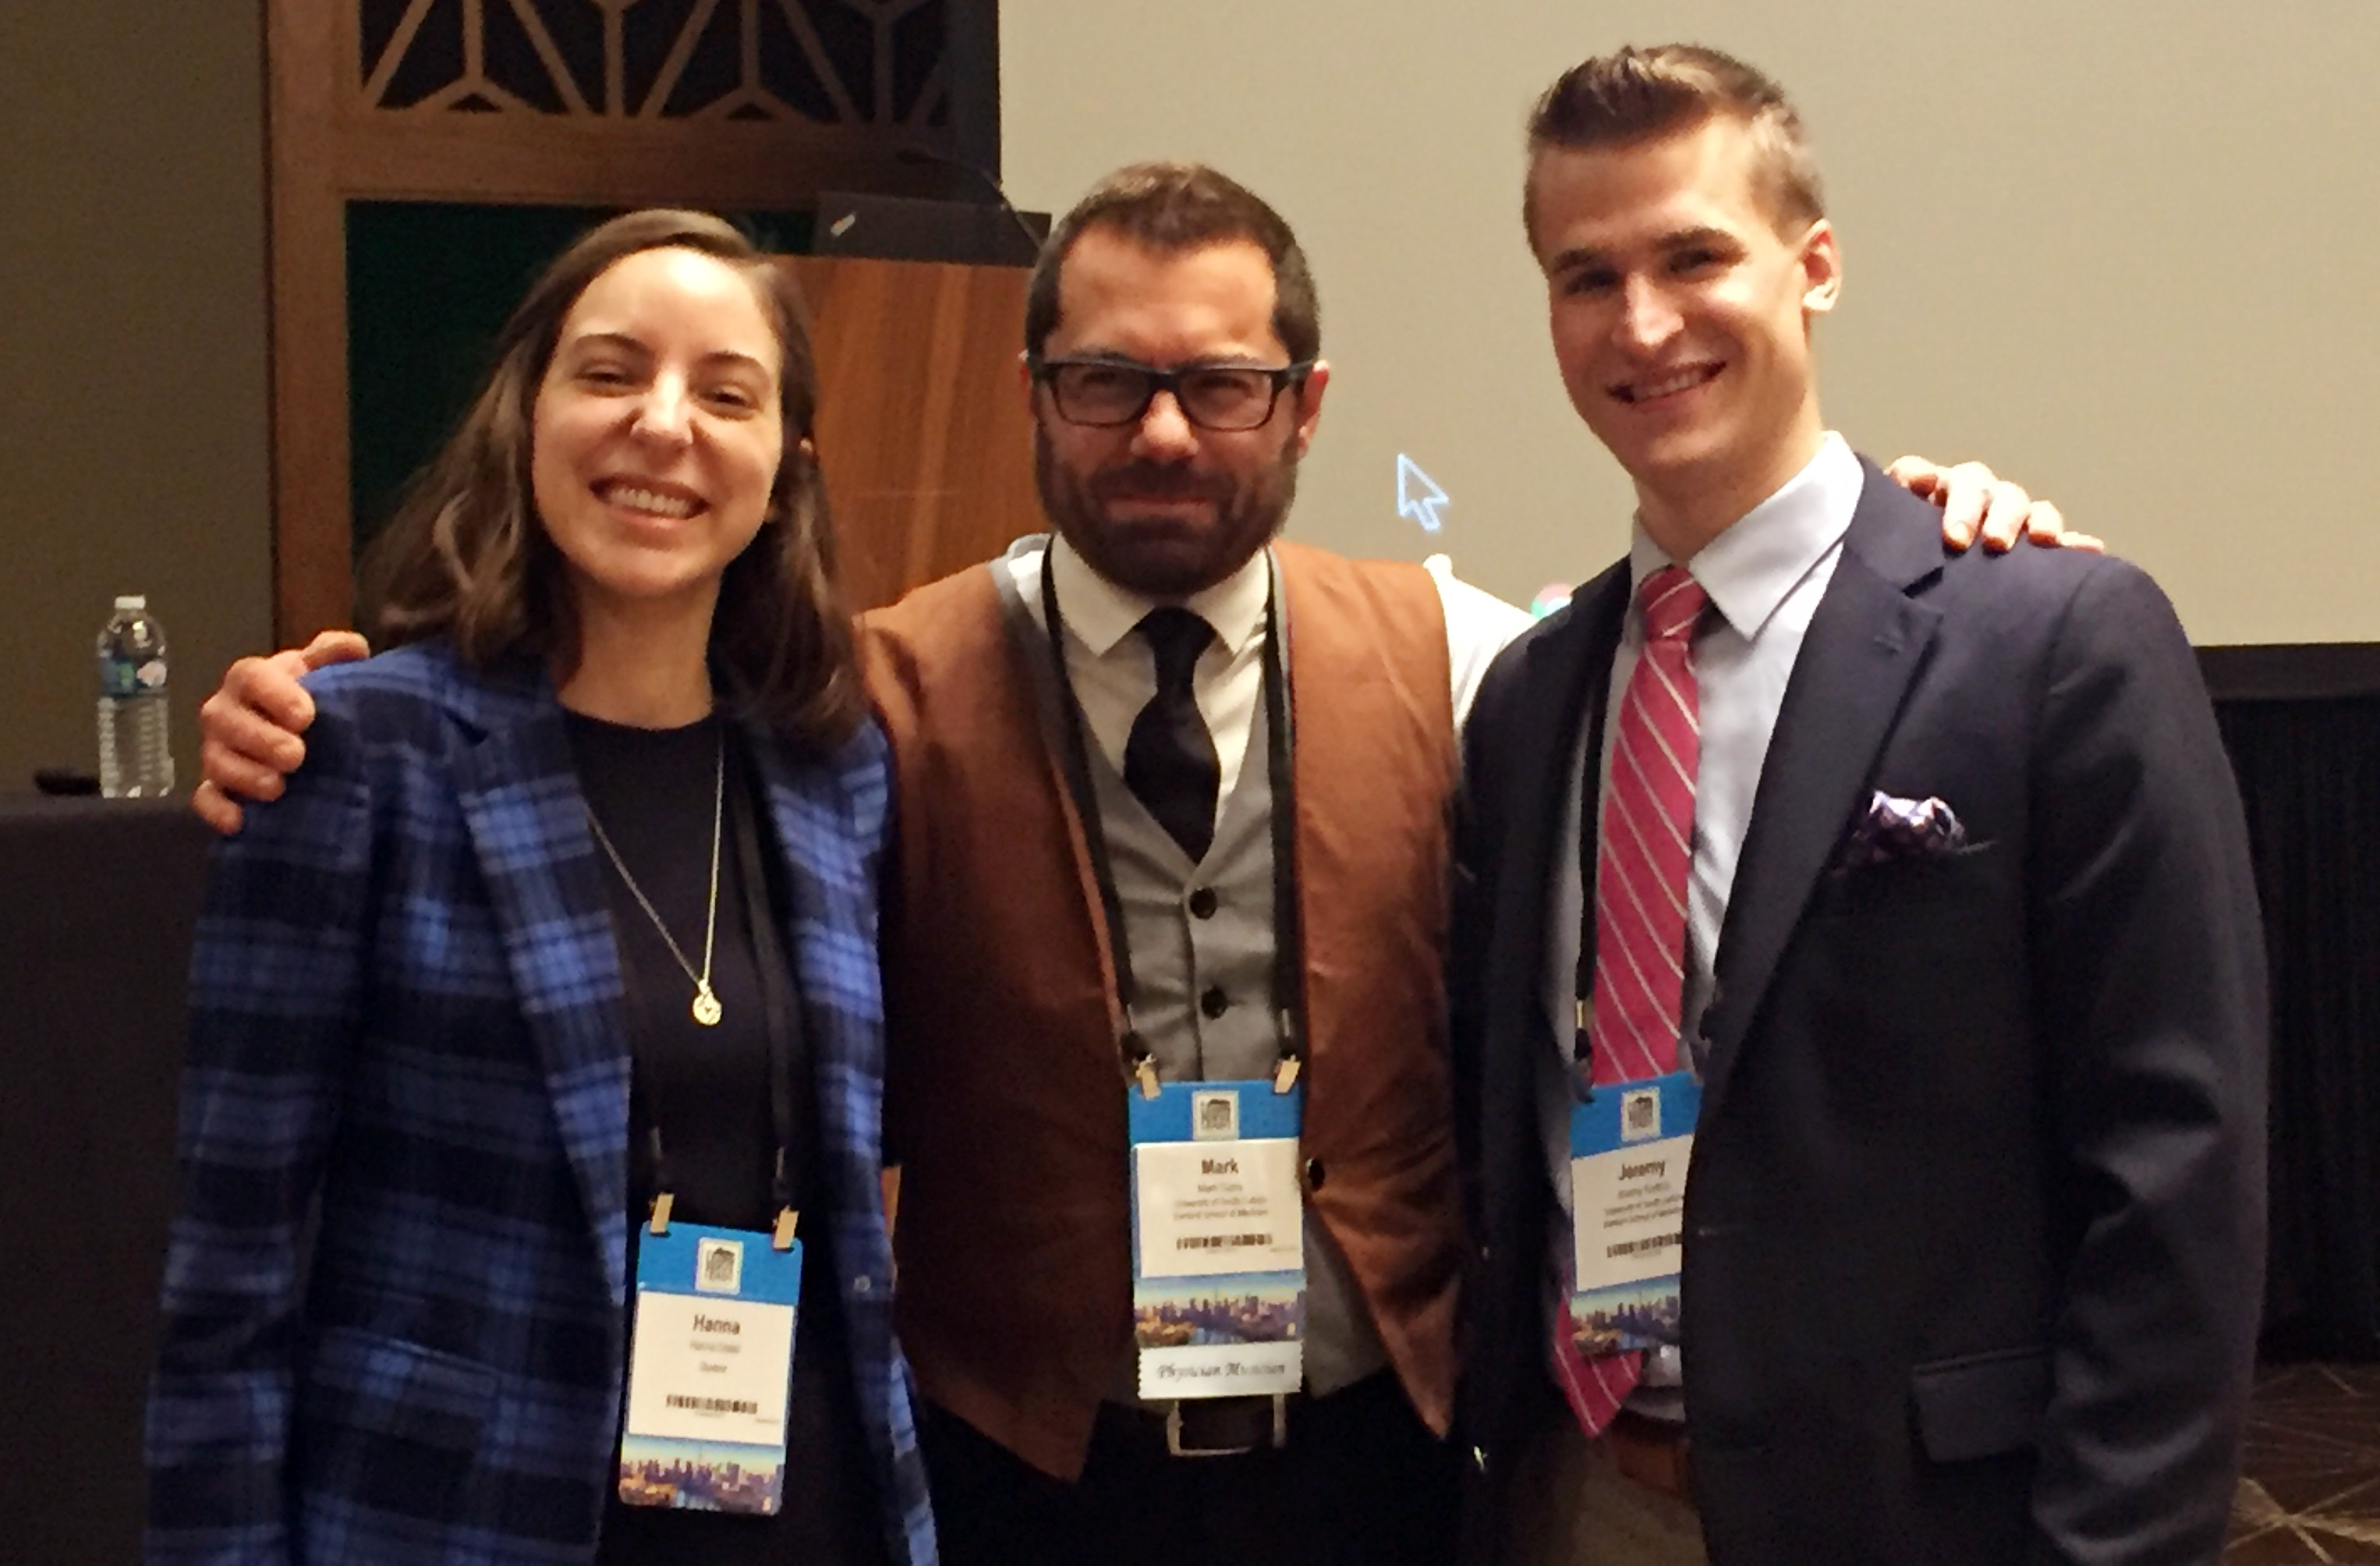 From left, fourth-year student Hanna Distel, Dr. Mark Garry, and third-year student Jeremy Kudrna. Hanna and Jeremy nominated Dr. Garry, who is a professor at University of South Dakota Sanford School of Medicine, for the Arnold P. Gold Humanism in Medicine Award. This photo was taken at a ceremony on Nov. 2, 2018, to honor Dr. Garry, who also gave a presentation to the AAMC Organization of Student Representatives during the luncheon.